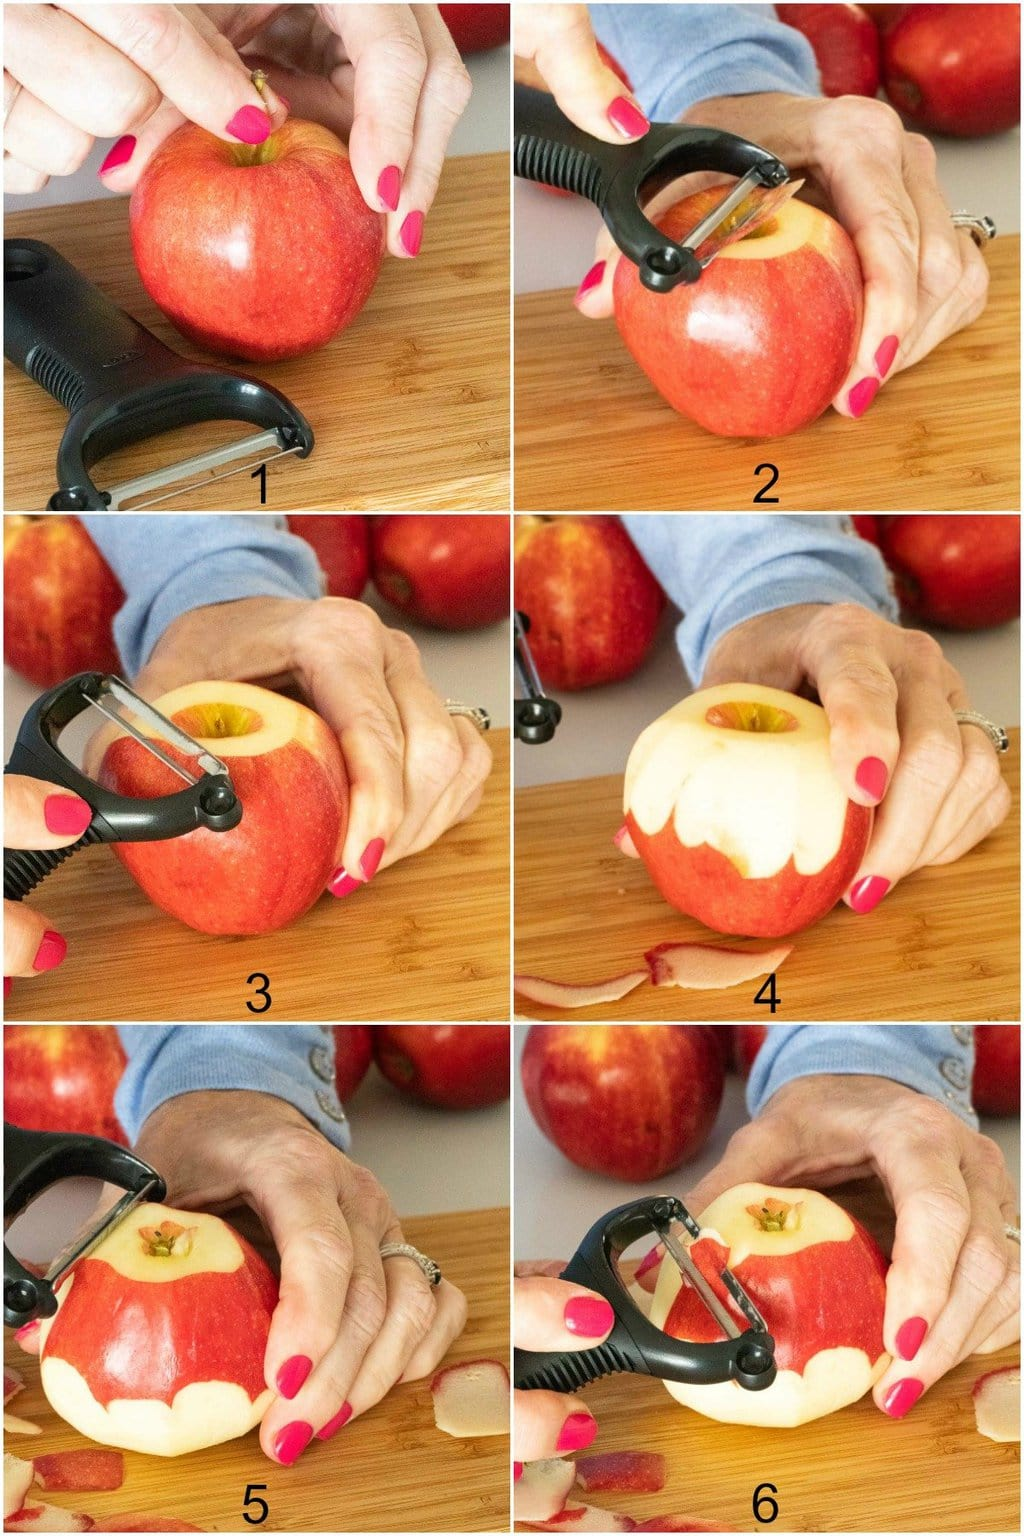 Six-photo vertical collage of pictures demonstrating how to quickly peal an apple for making Annie's Easy Apple Pie.